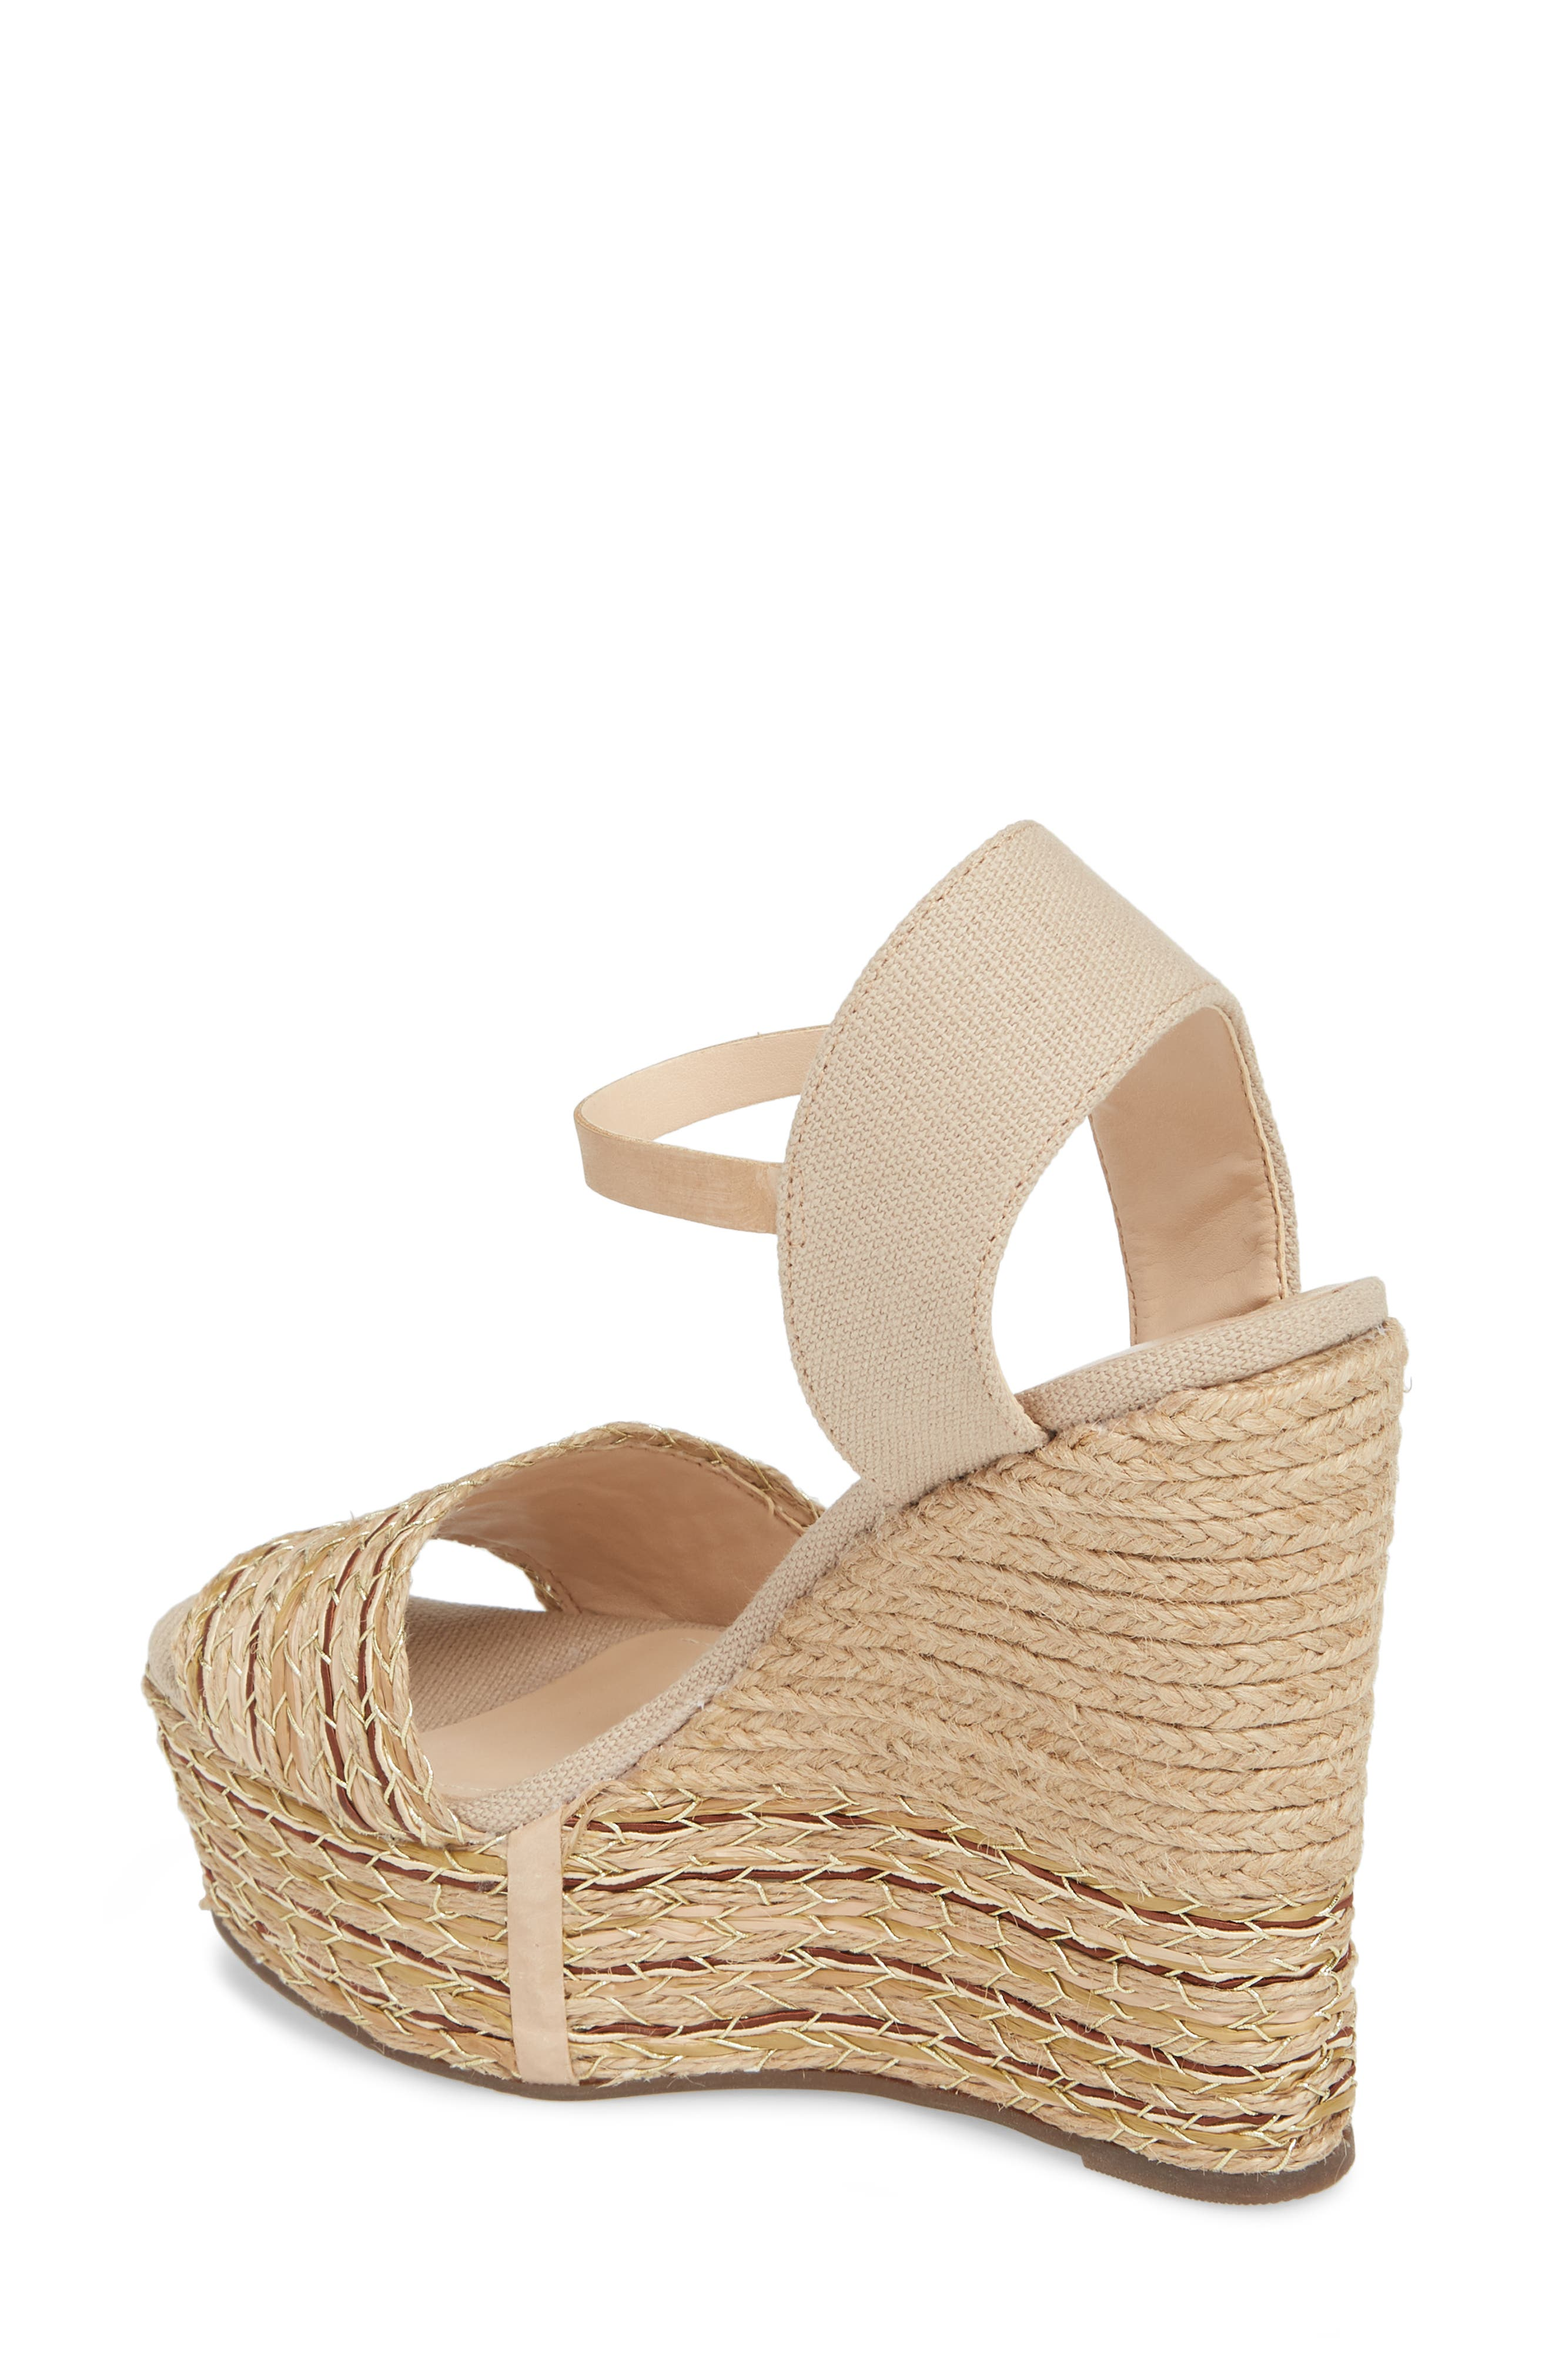 Rilark Platform Wedge Sandal,                             Alternate thumbnail 2, color,                             Coco Fabric